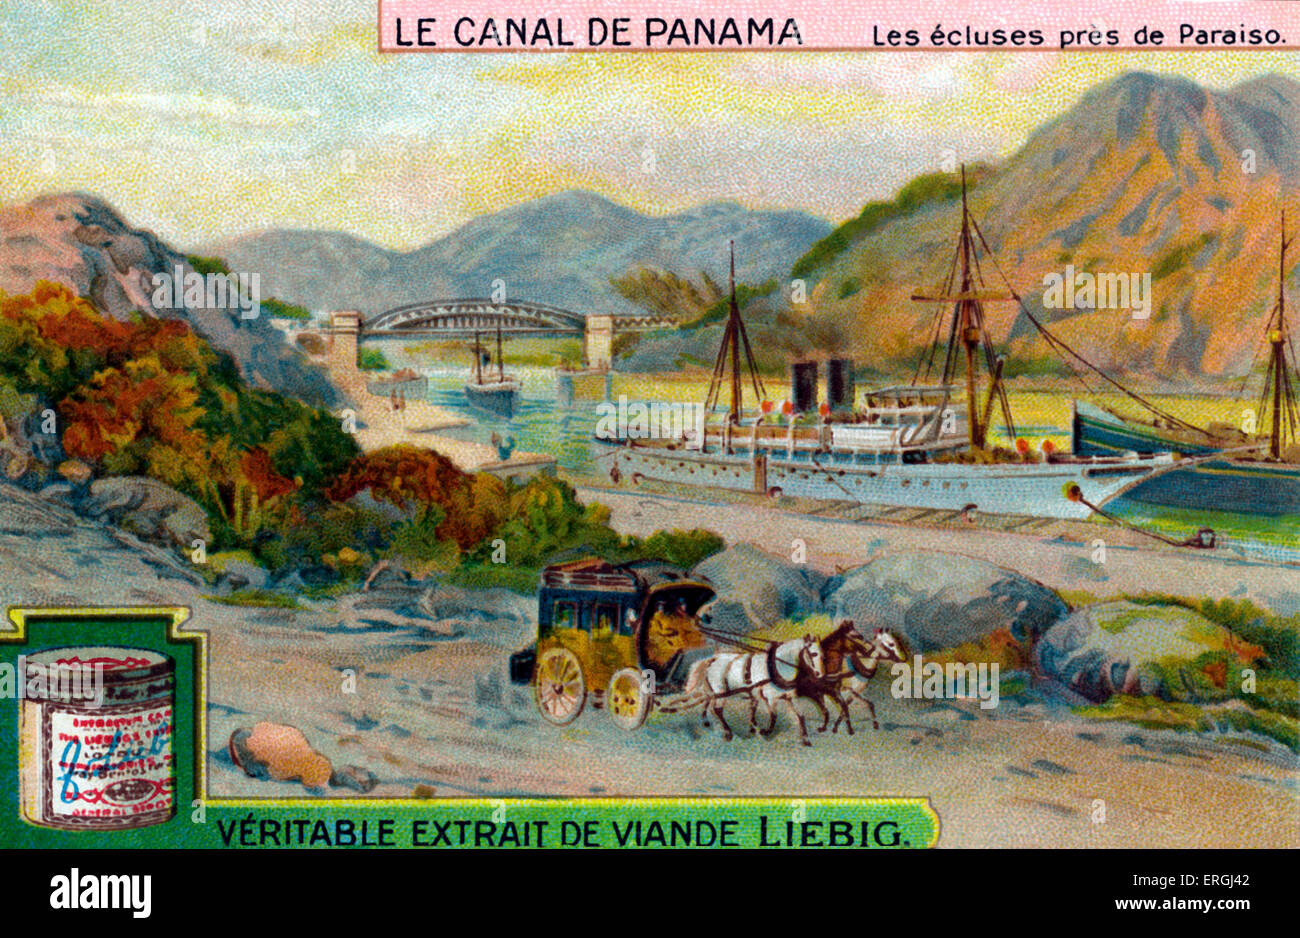 The Panama Canal: Locks near Paraiso. Liebig collectible card  series (French title: 'Le Canal de Panama'). - Stock Image